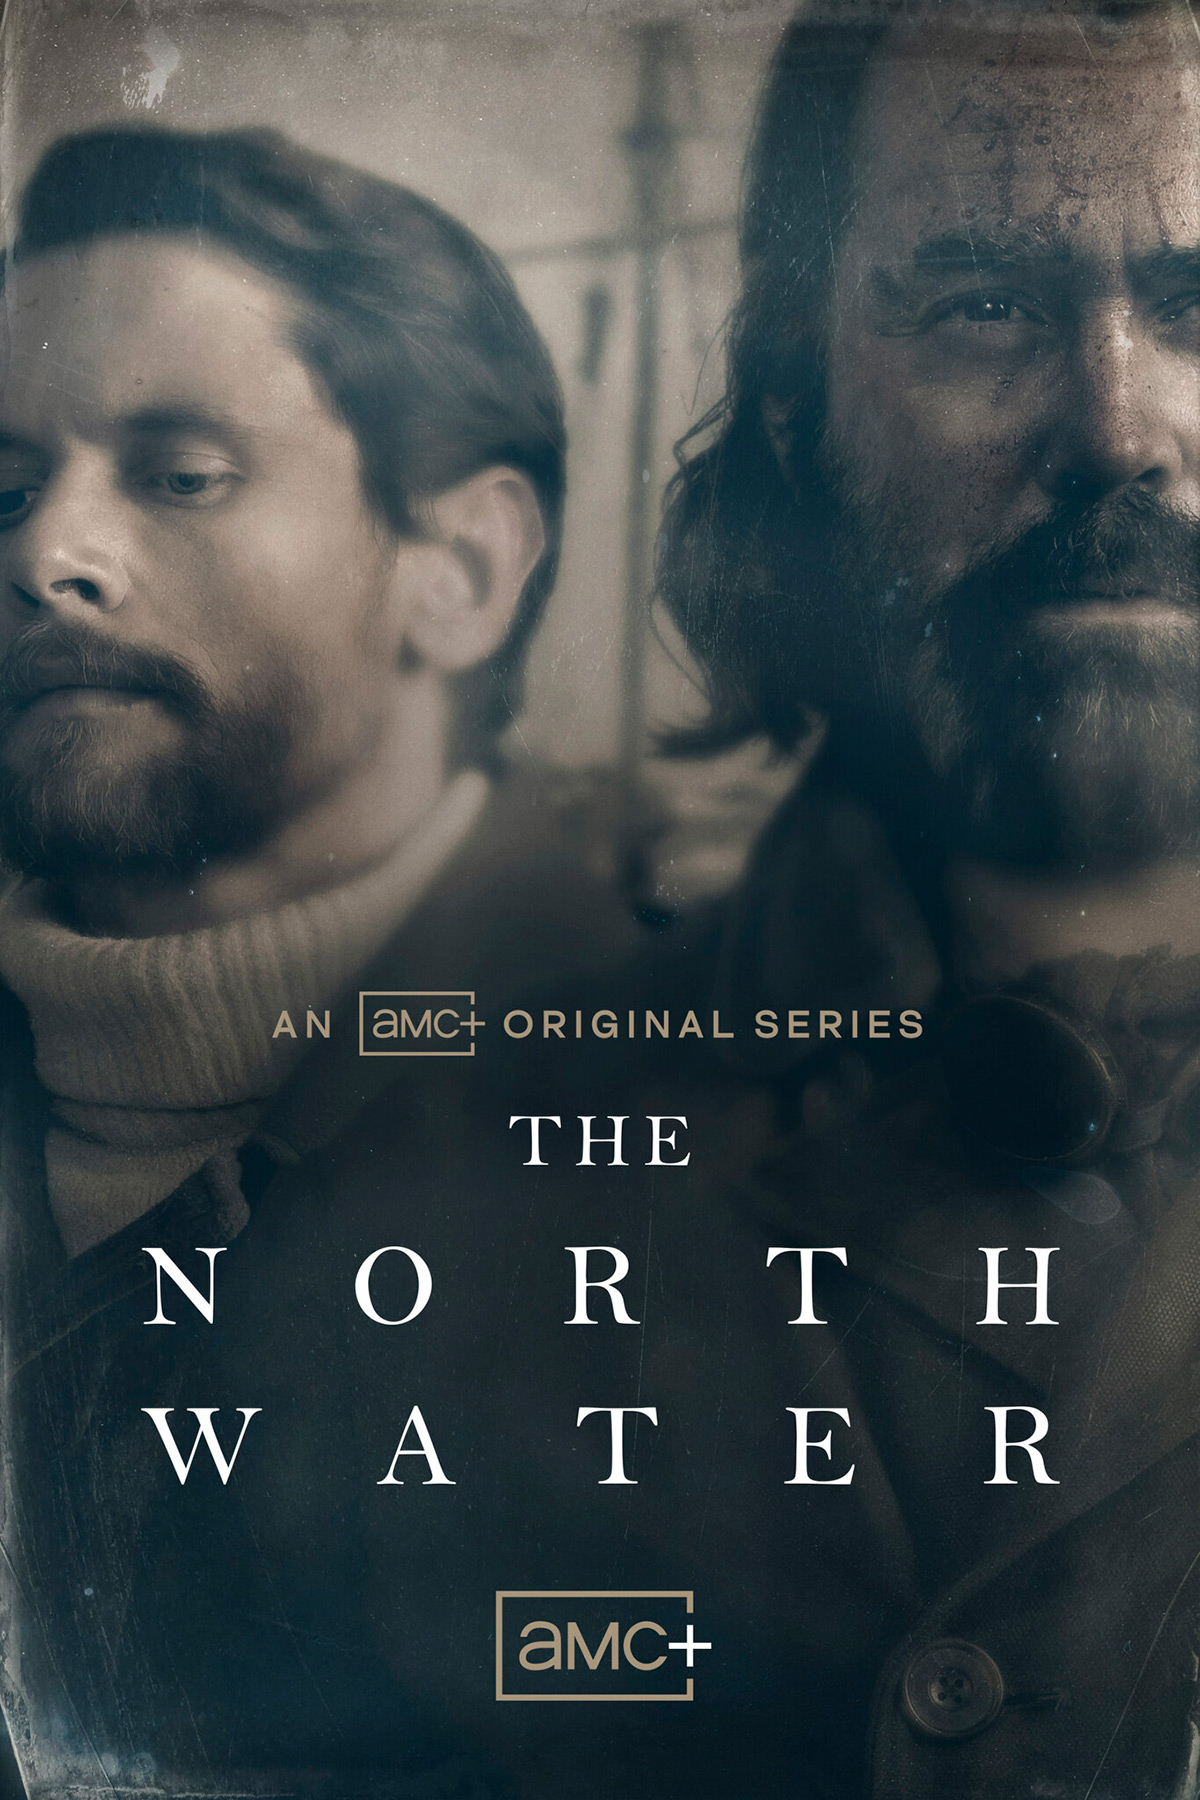 AMC+'s The North Water Trailer Starring Jack O'Connell & Colin Farrell